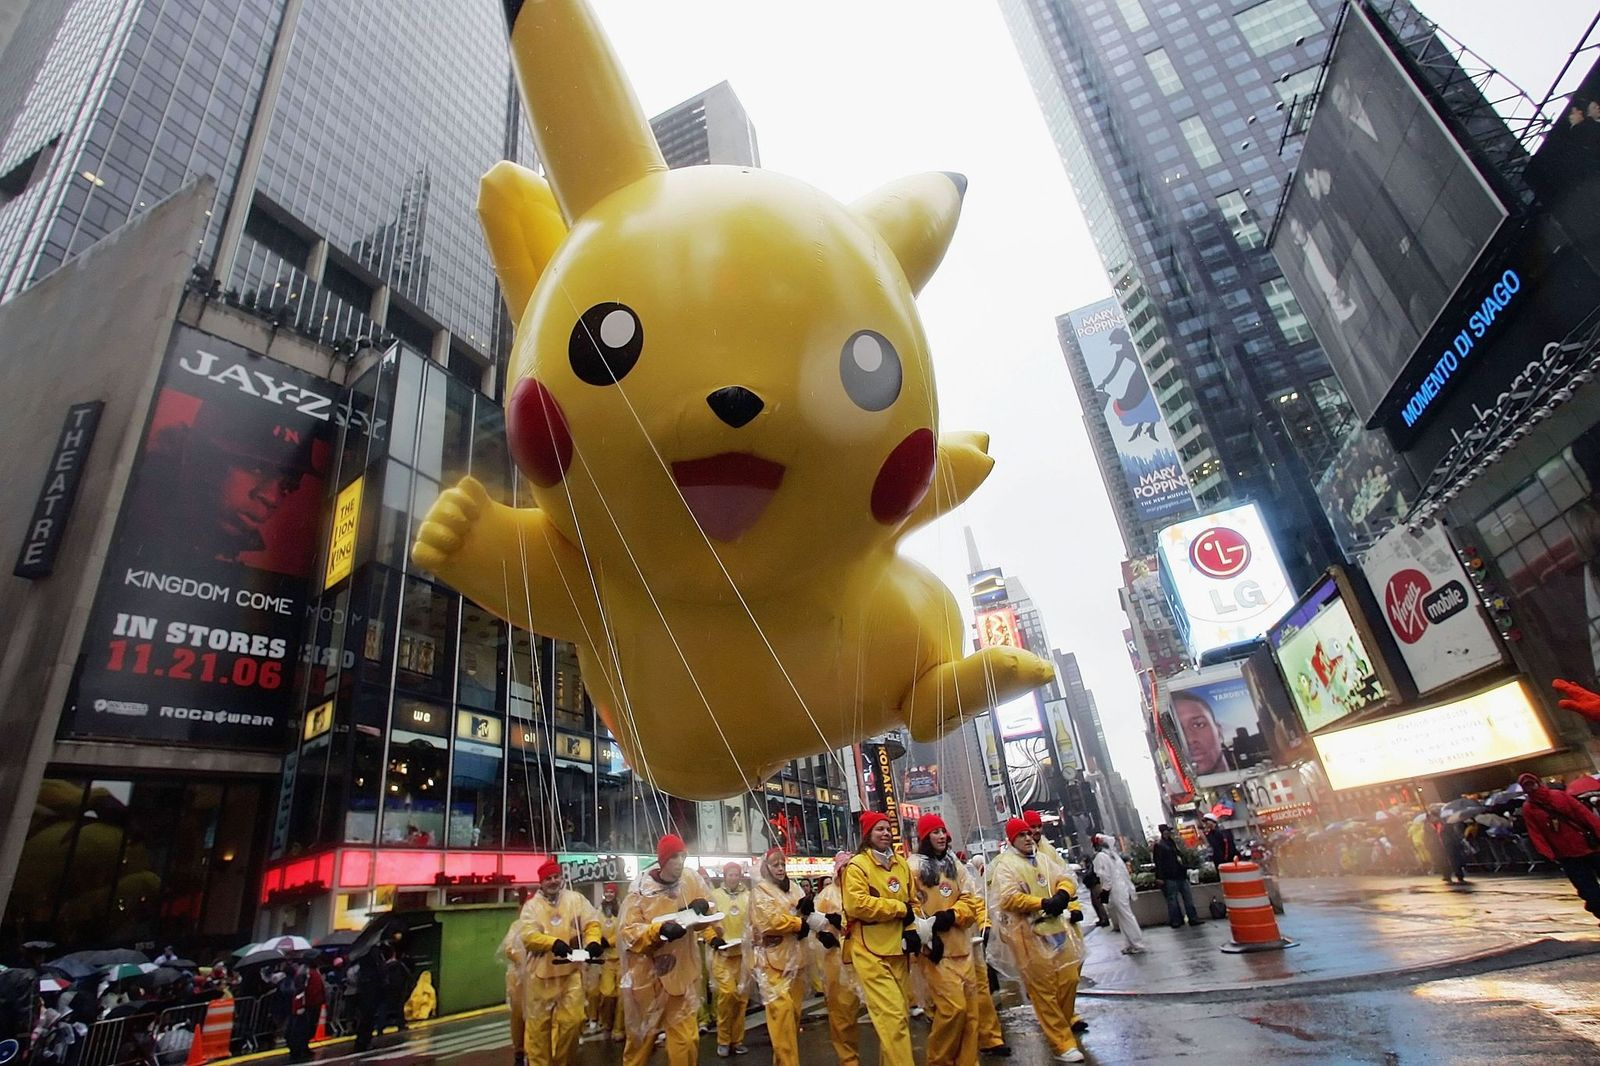 The Pikachu balloon makes its way down a rainy Broadway at the 80th Macy's Thanksgiving Day parade, November 23, 2006 | Photo: Getty Images